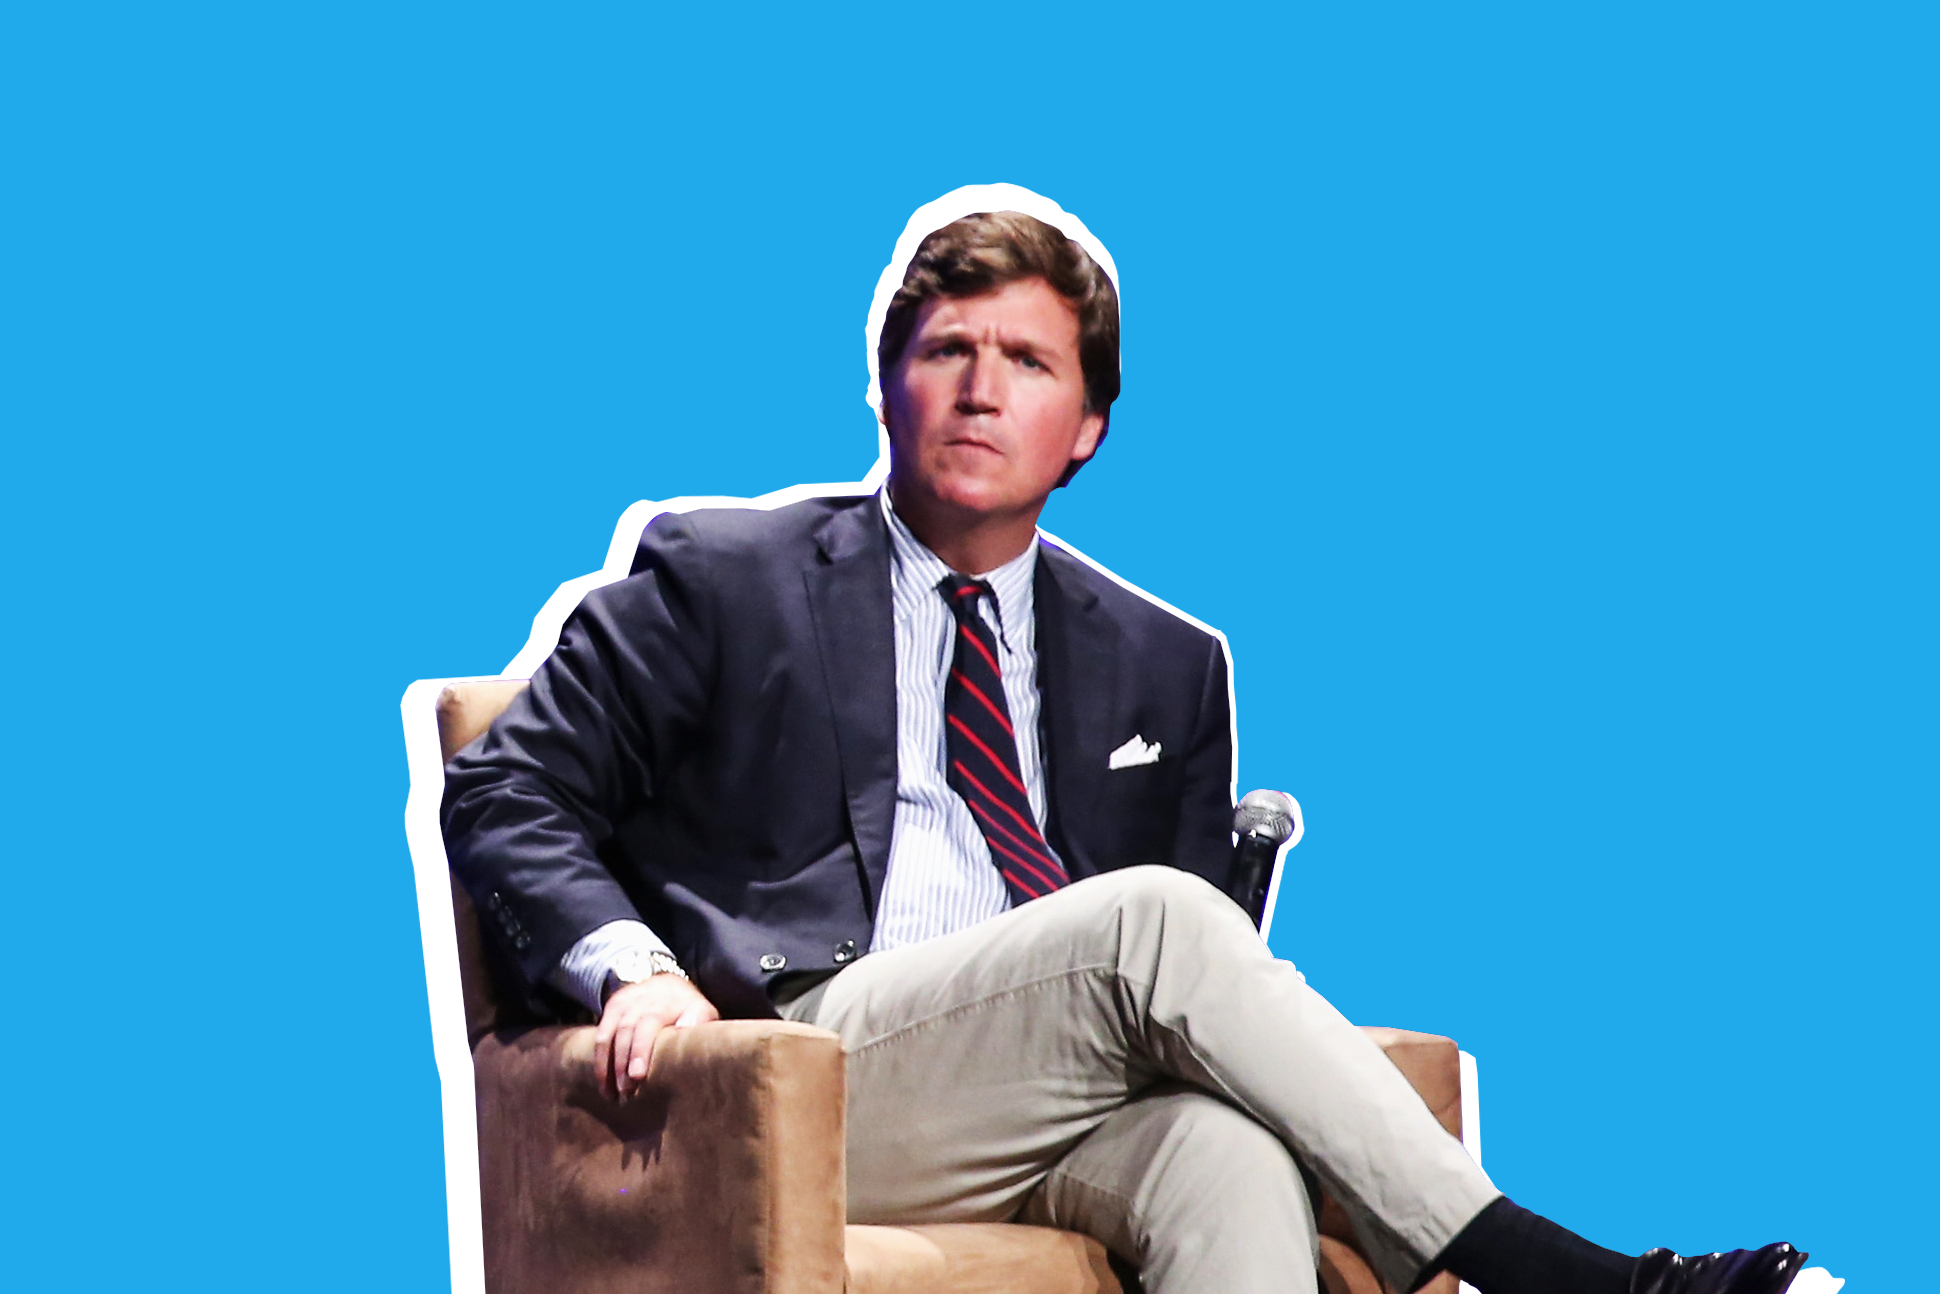 Tucker Carlson on October 21, 2018 in Los Angeles, California.